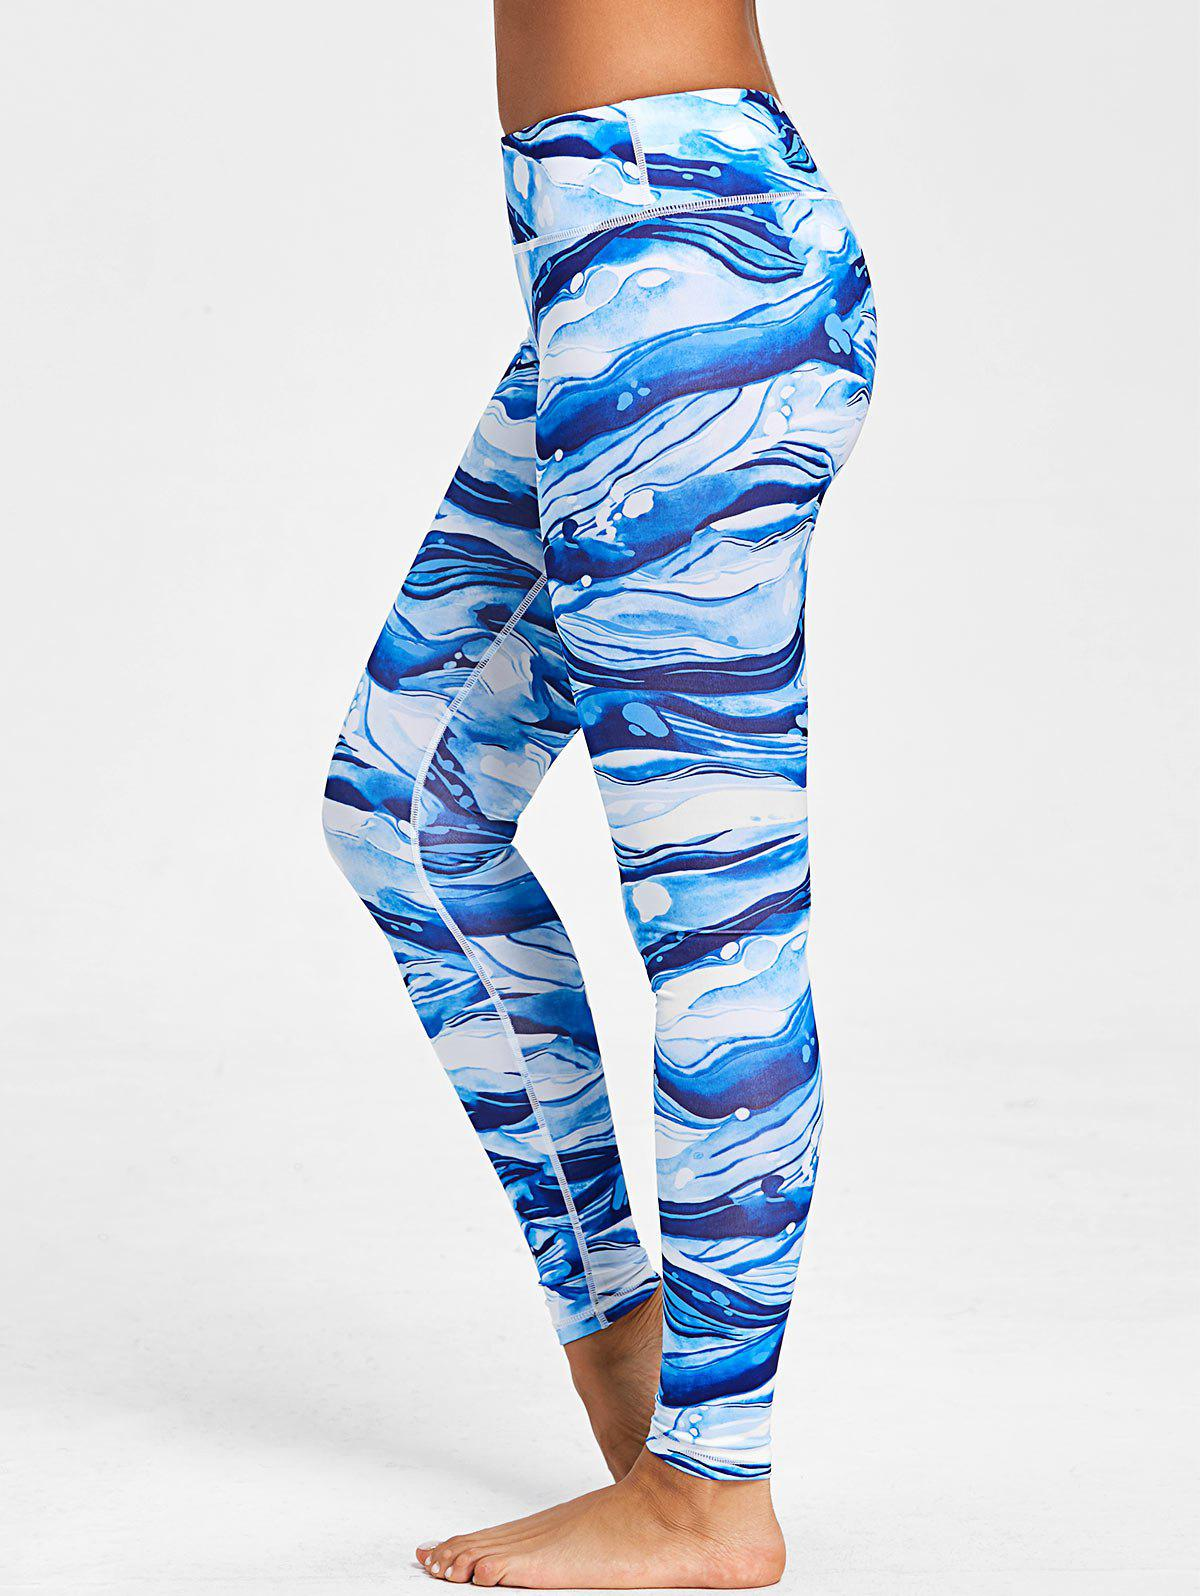 Ocean Waves Printed Elastic Waisted Workout Leggings - COLORMIX L